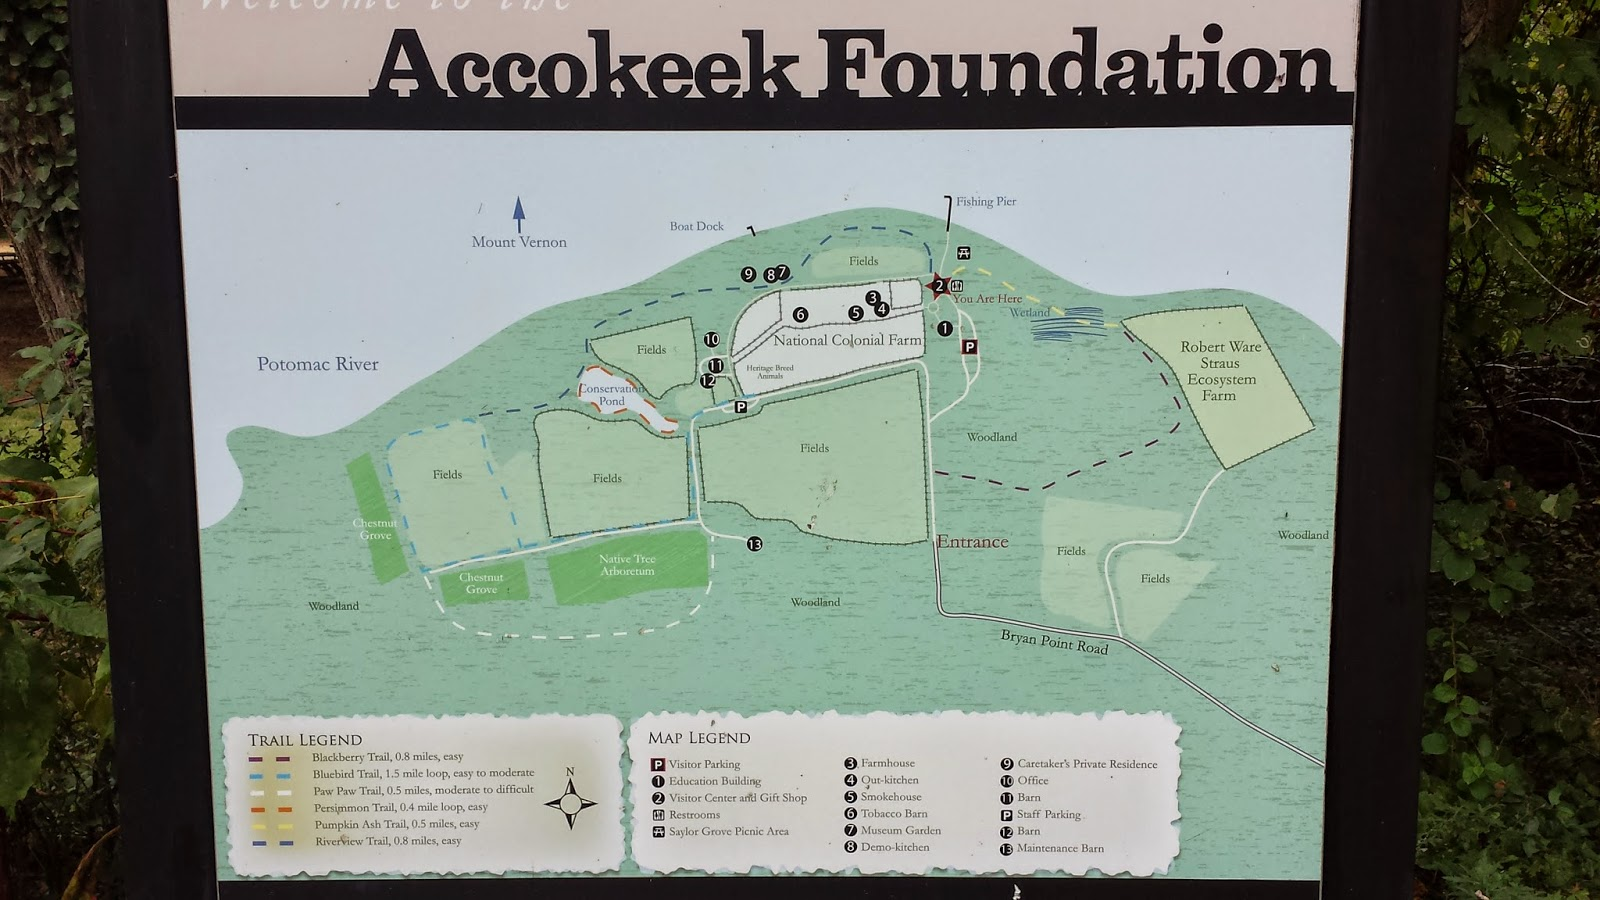 the accokeek foundation preserves the shoreline this location is directly across the potomac river from mount vernon the foundation established in 1954